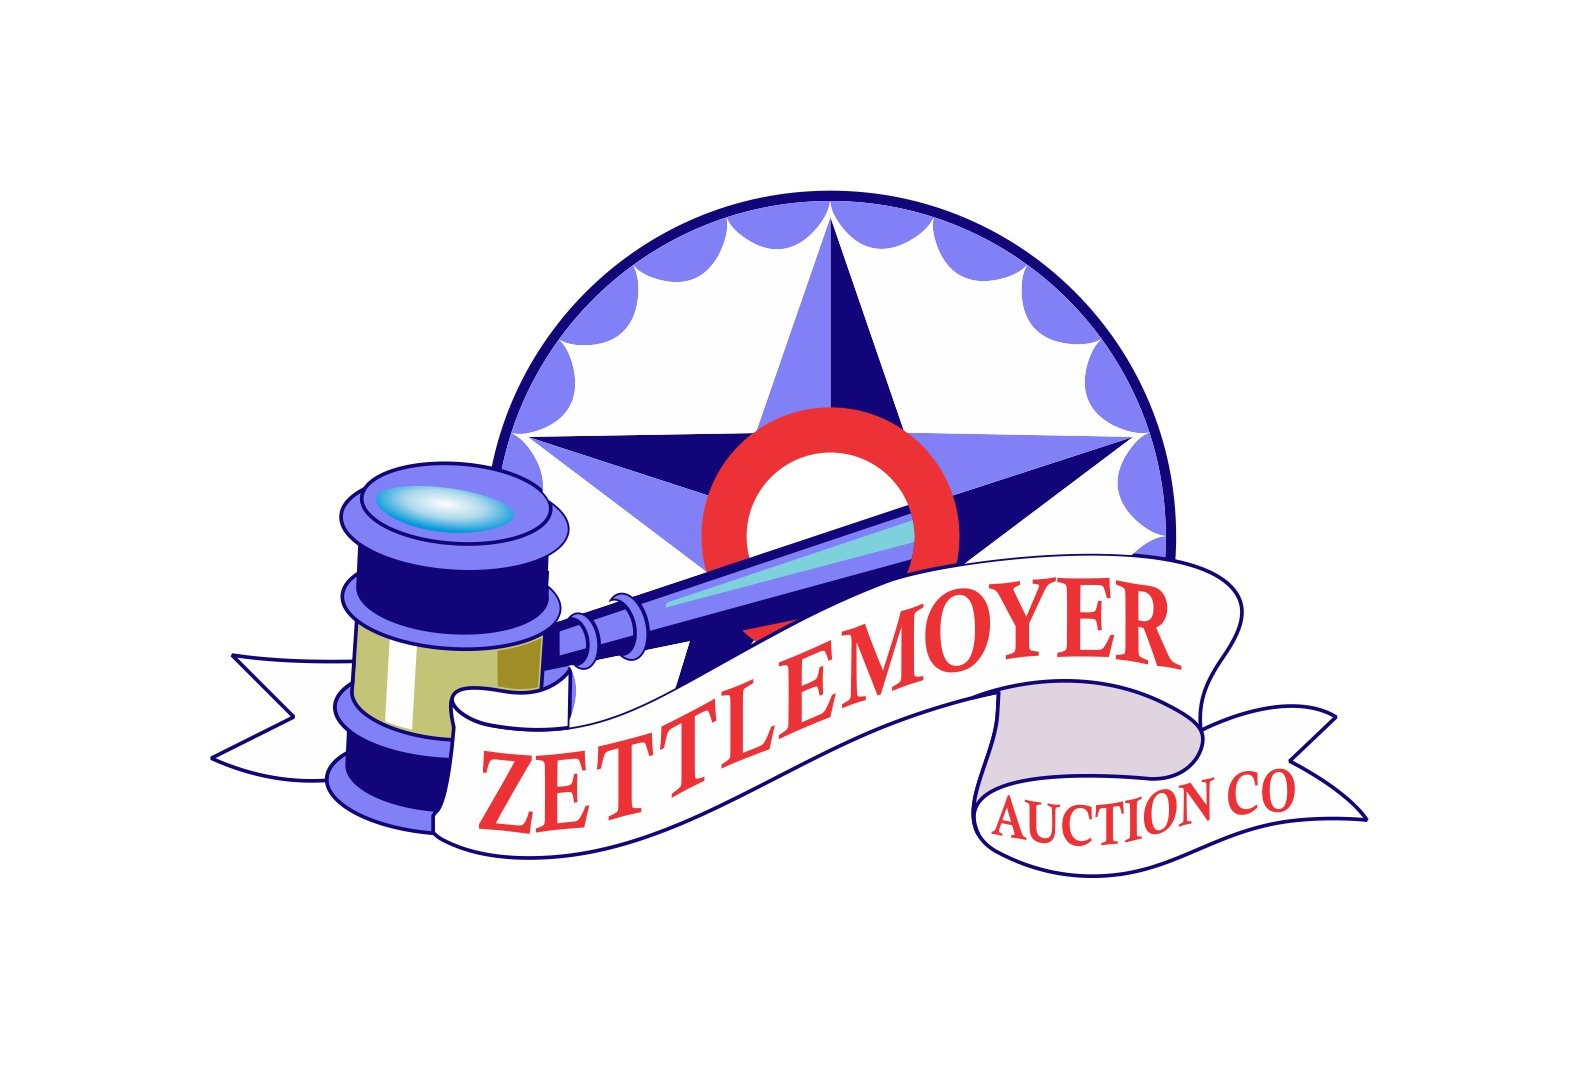 Zettlemoyer Auction Co., LLC.